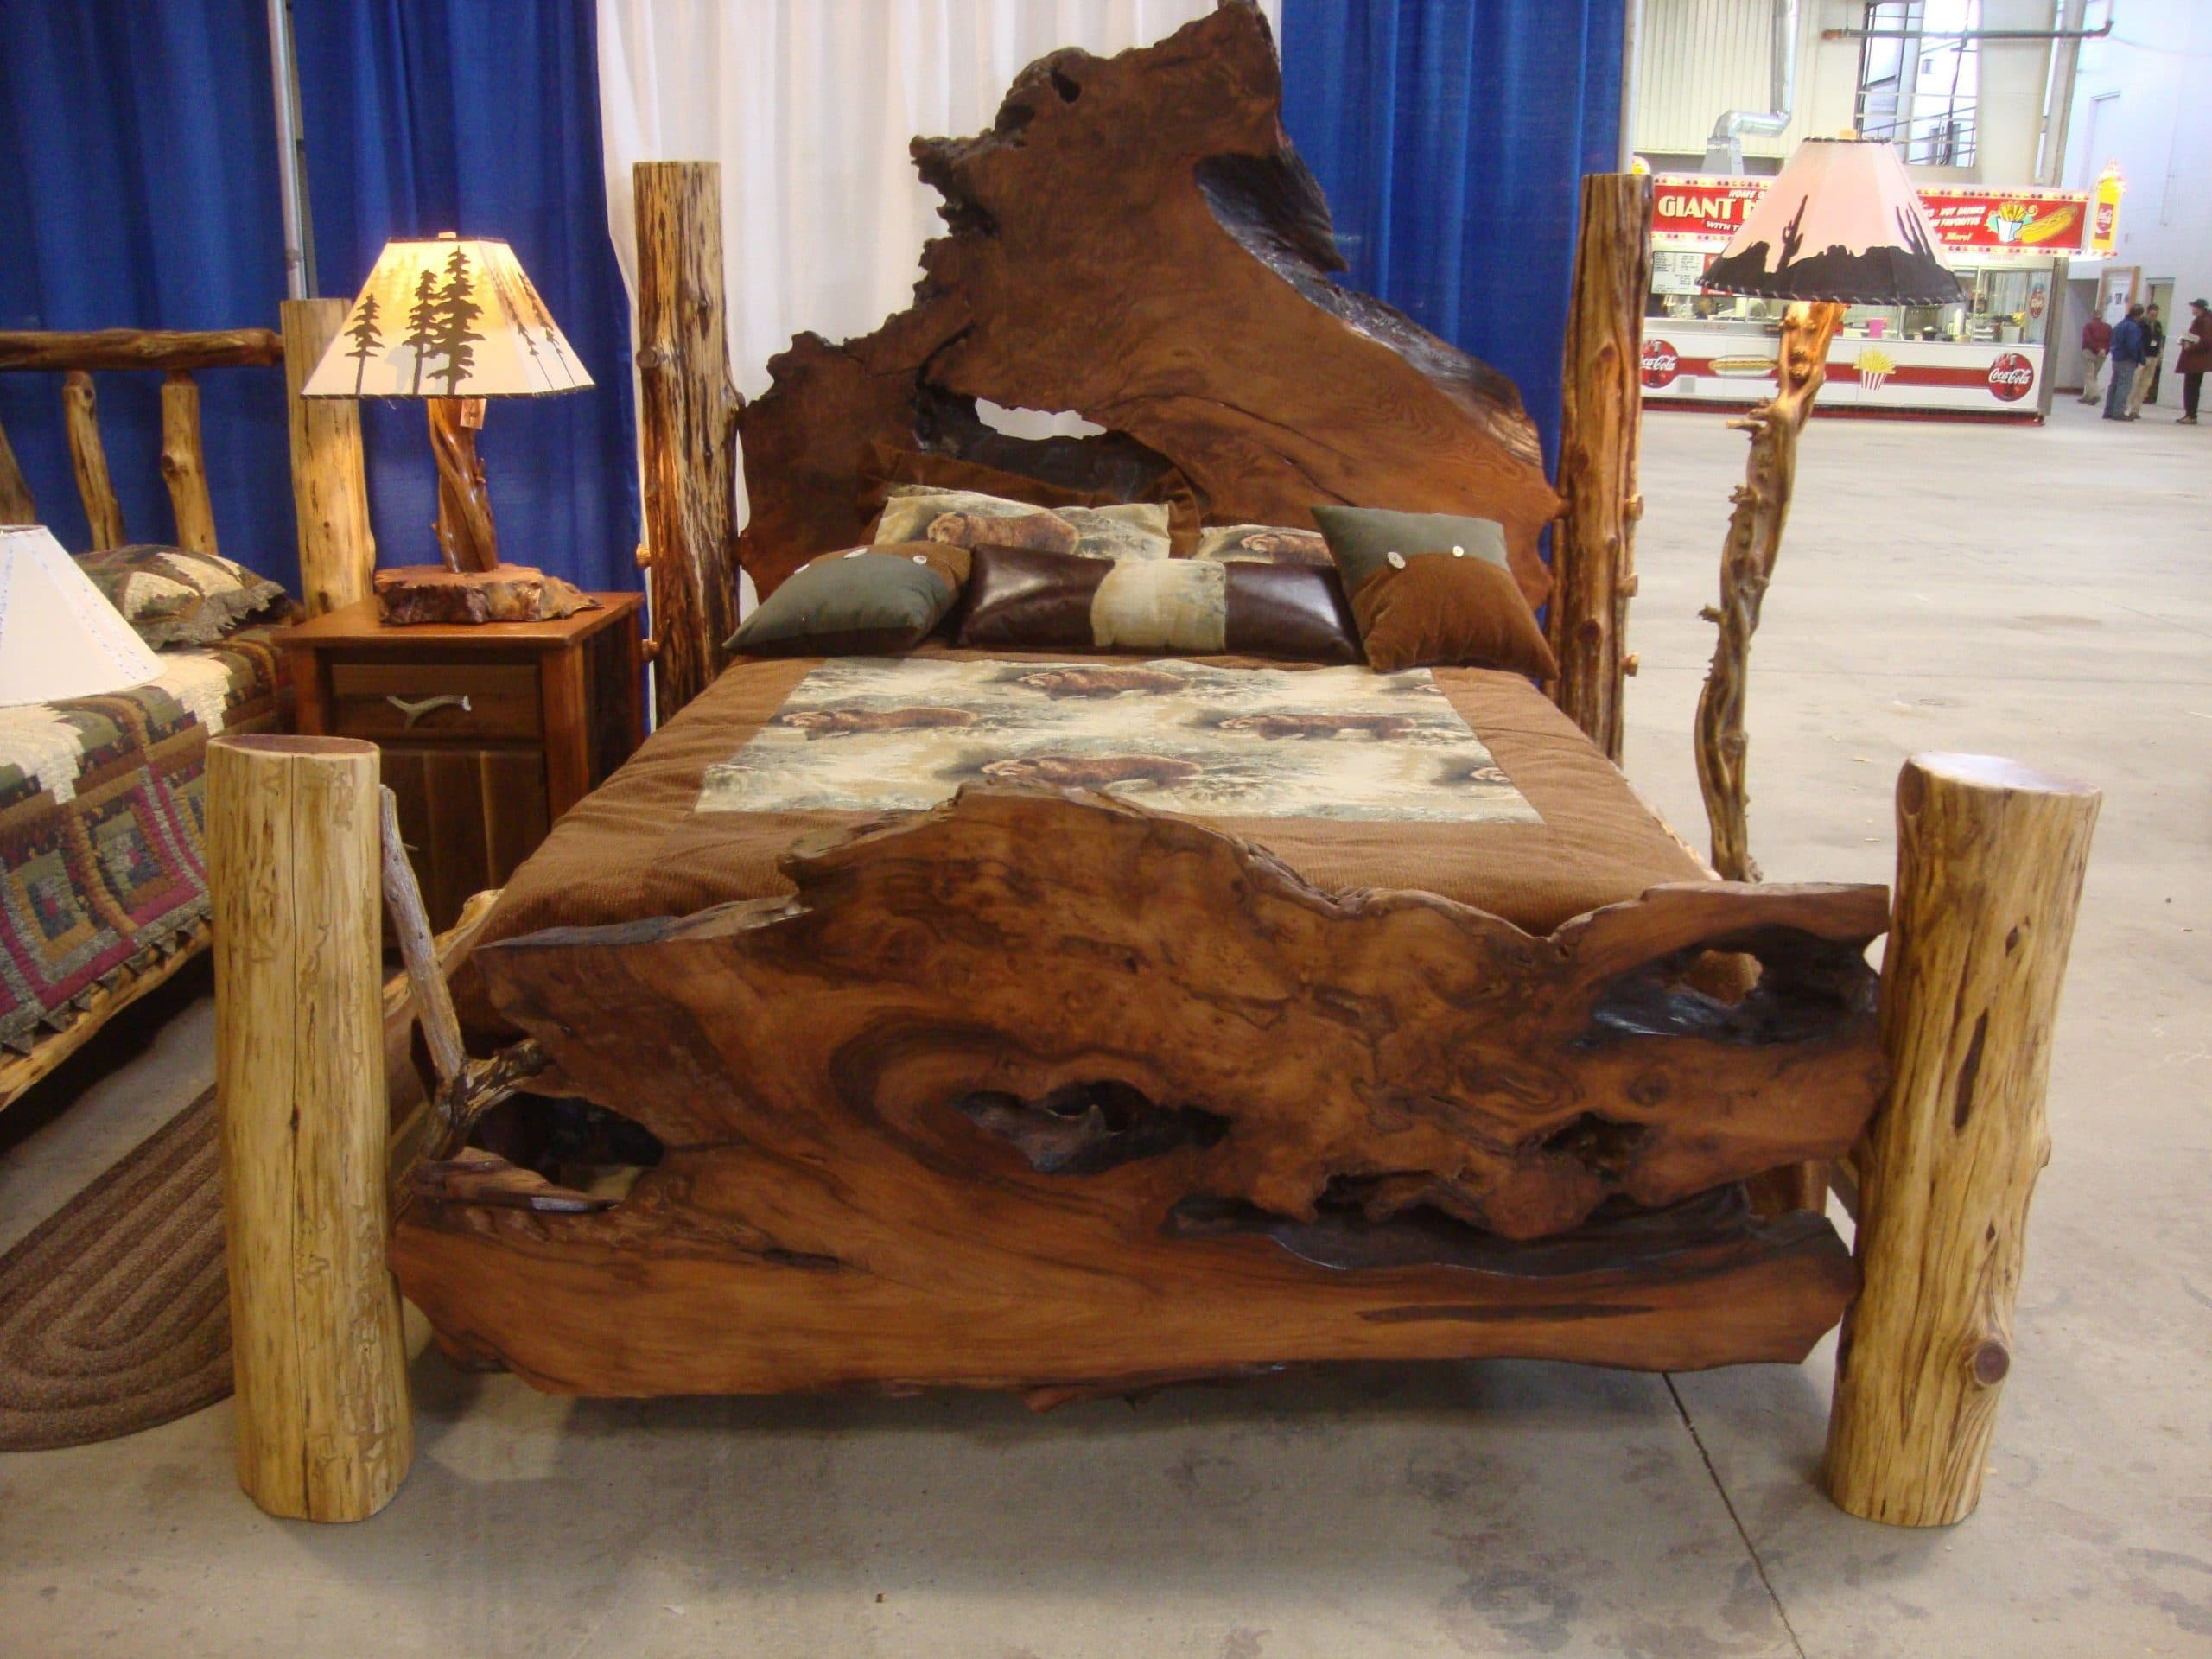 Rustic Beds -live edge burl wood slab bed